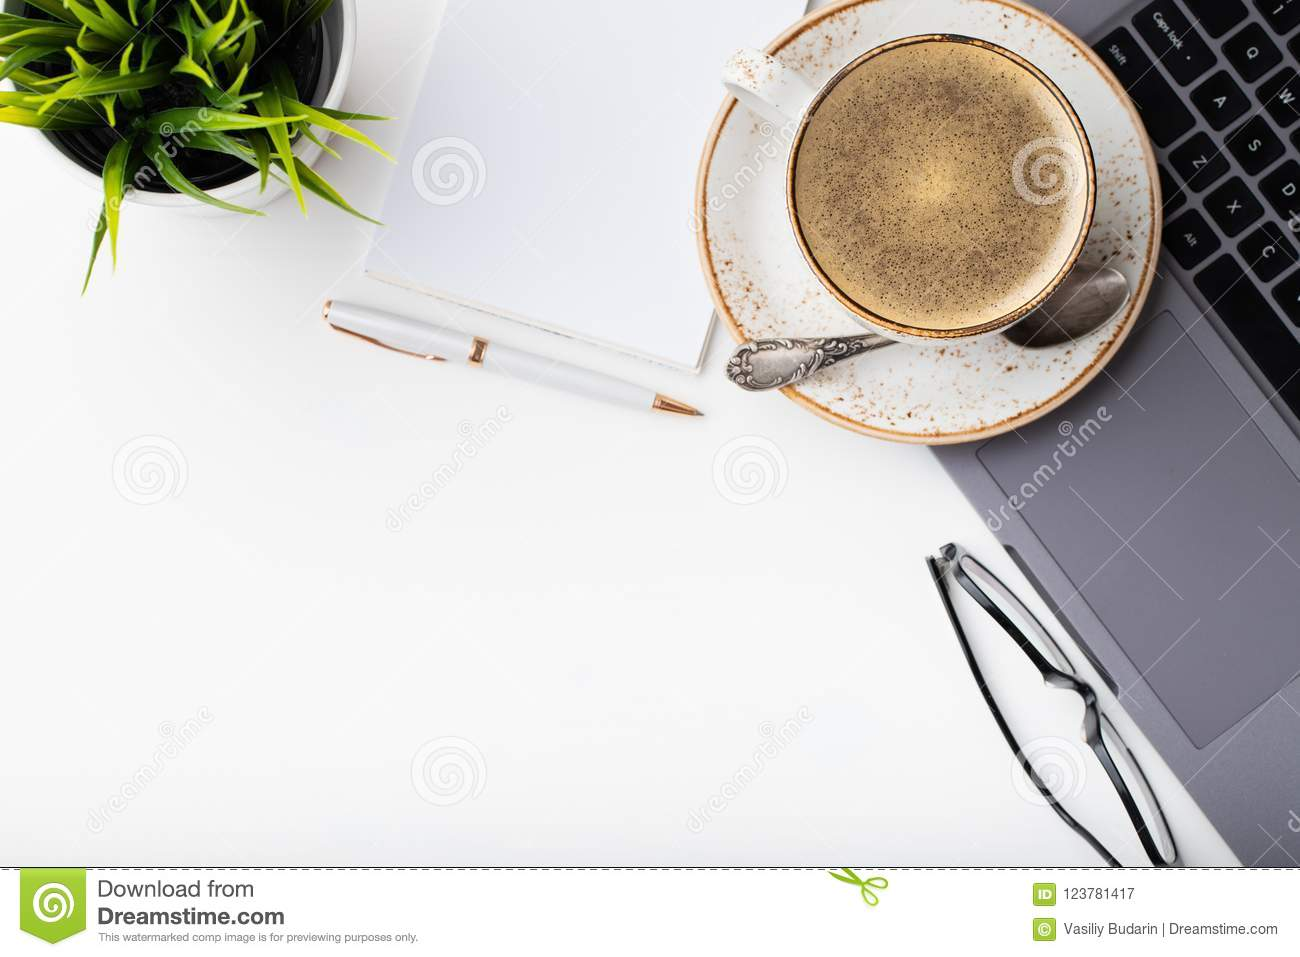 Desk with laptop, eye glasses, notepad, pen and a cup of coffee on a white table. Top view with copy space. Flat lay. Light backgr